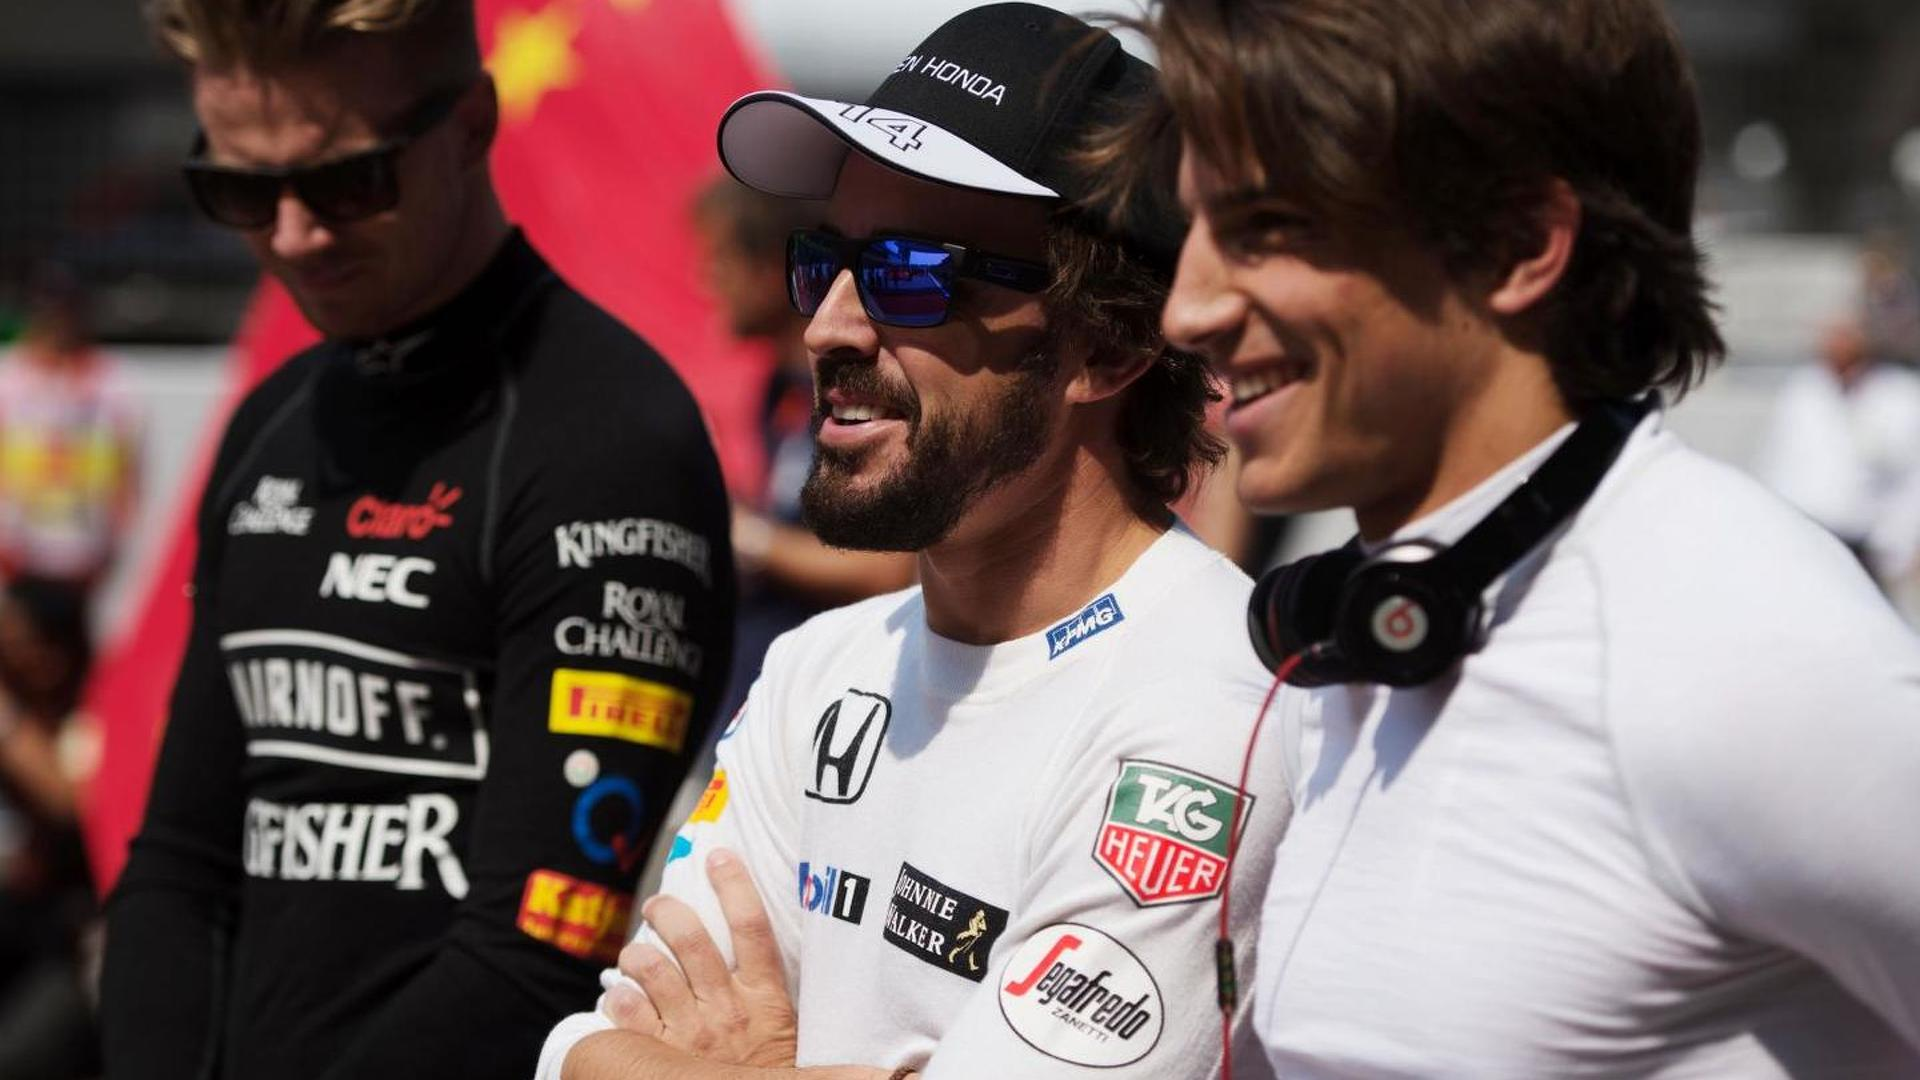 Alonso in top shape for years to come - trainer